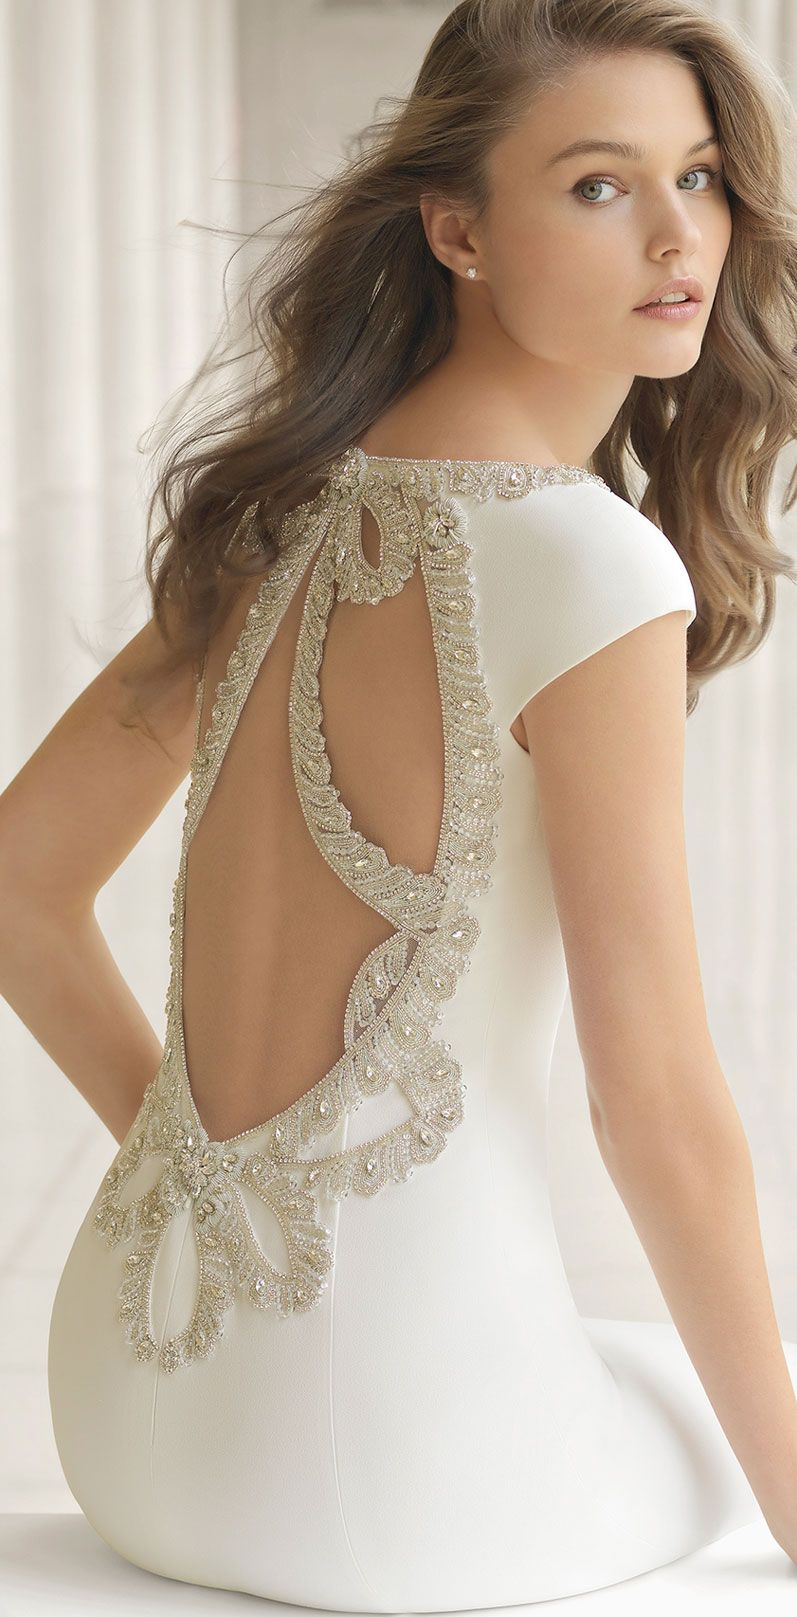 85 Stunning wedding dresses with amazing details, short sleeve wedding dress with amazing back details,heavy embellishment wedding dress #weddingdress #weddinggown